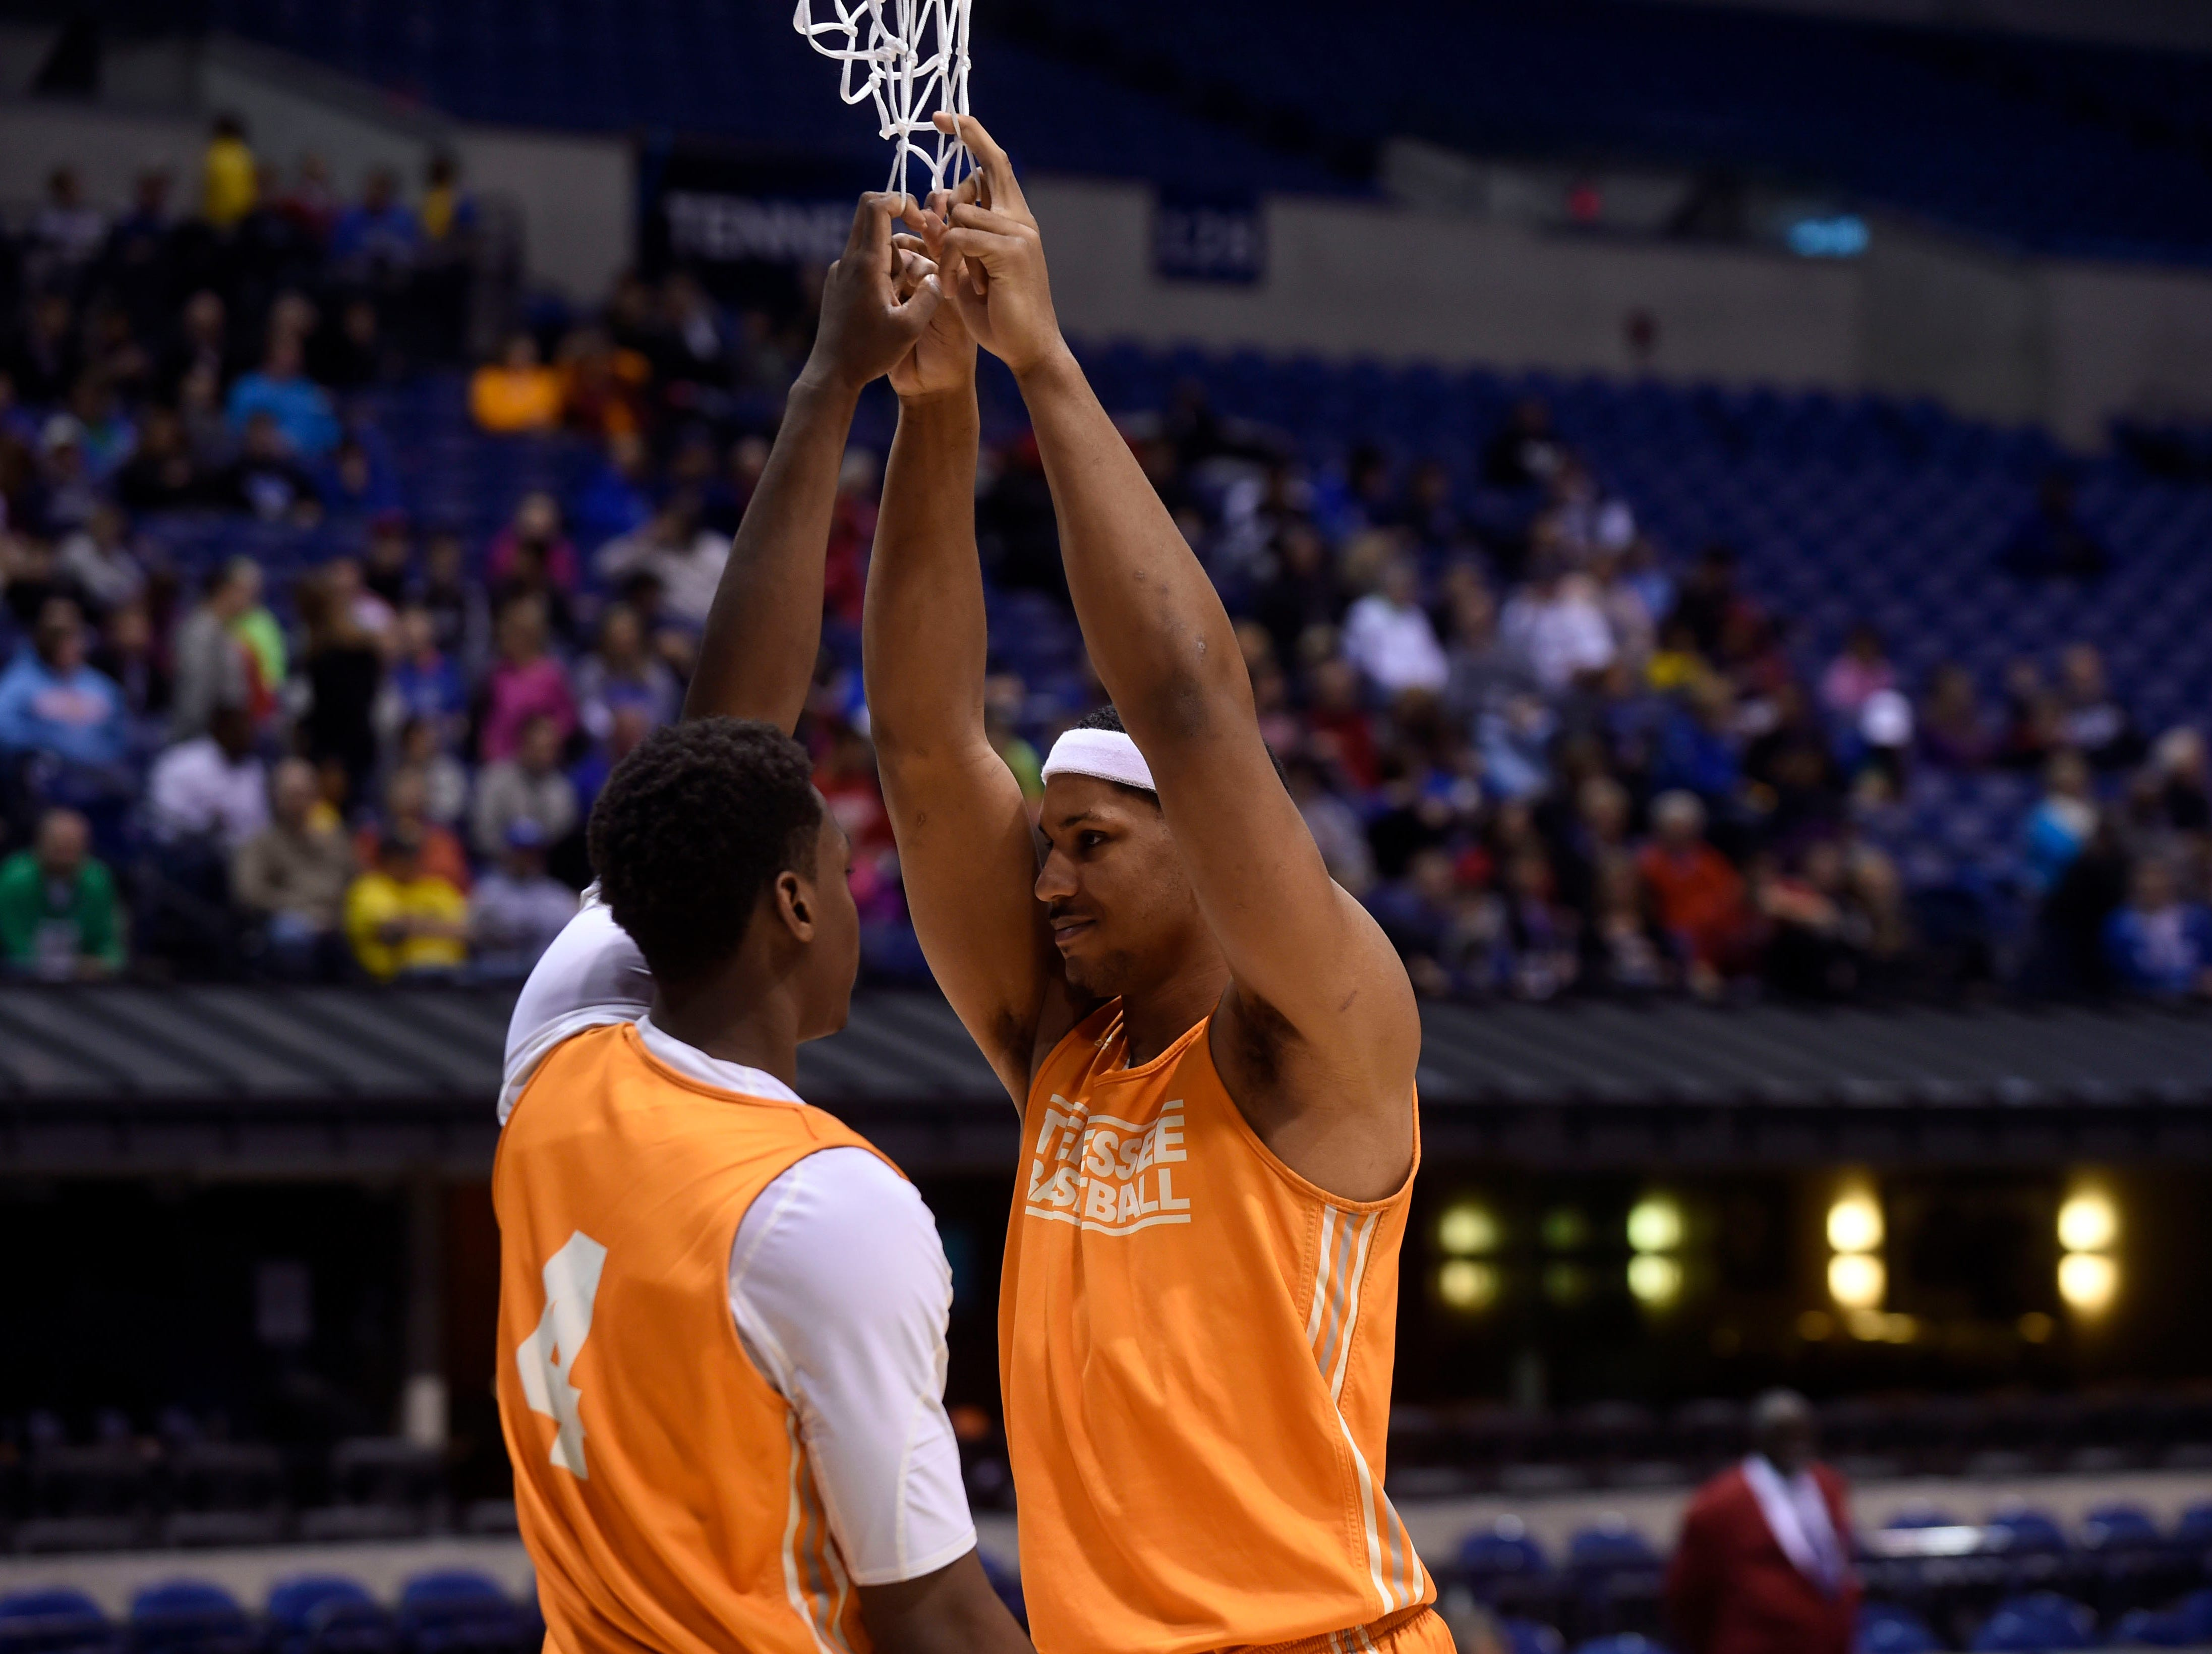 Tennessee guard Armani Moore, left, and Tennessee forward Jarnell Stokes use the basketball net to stretch during practice before Tennessee's NCAA Sweet Sixteen game against Michigan at Lucas Oil Stadium in Indianapolis, IN on Thursday, March 27, 2014.